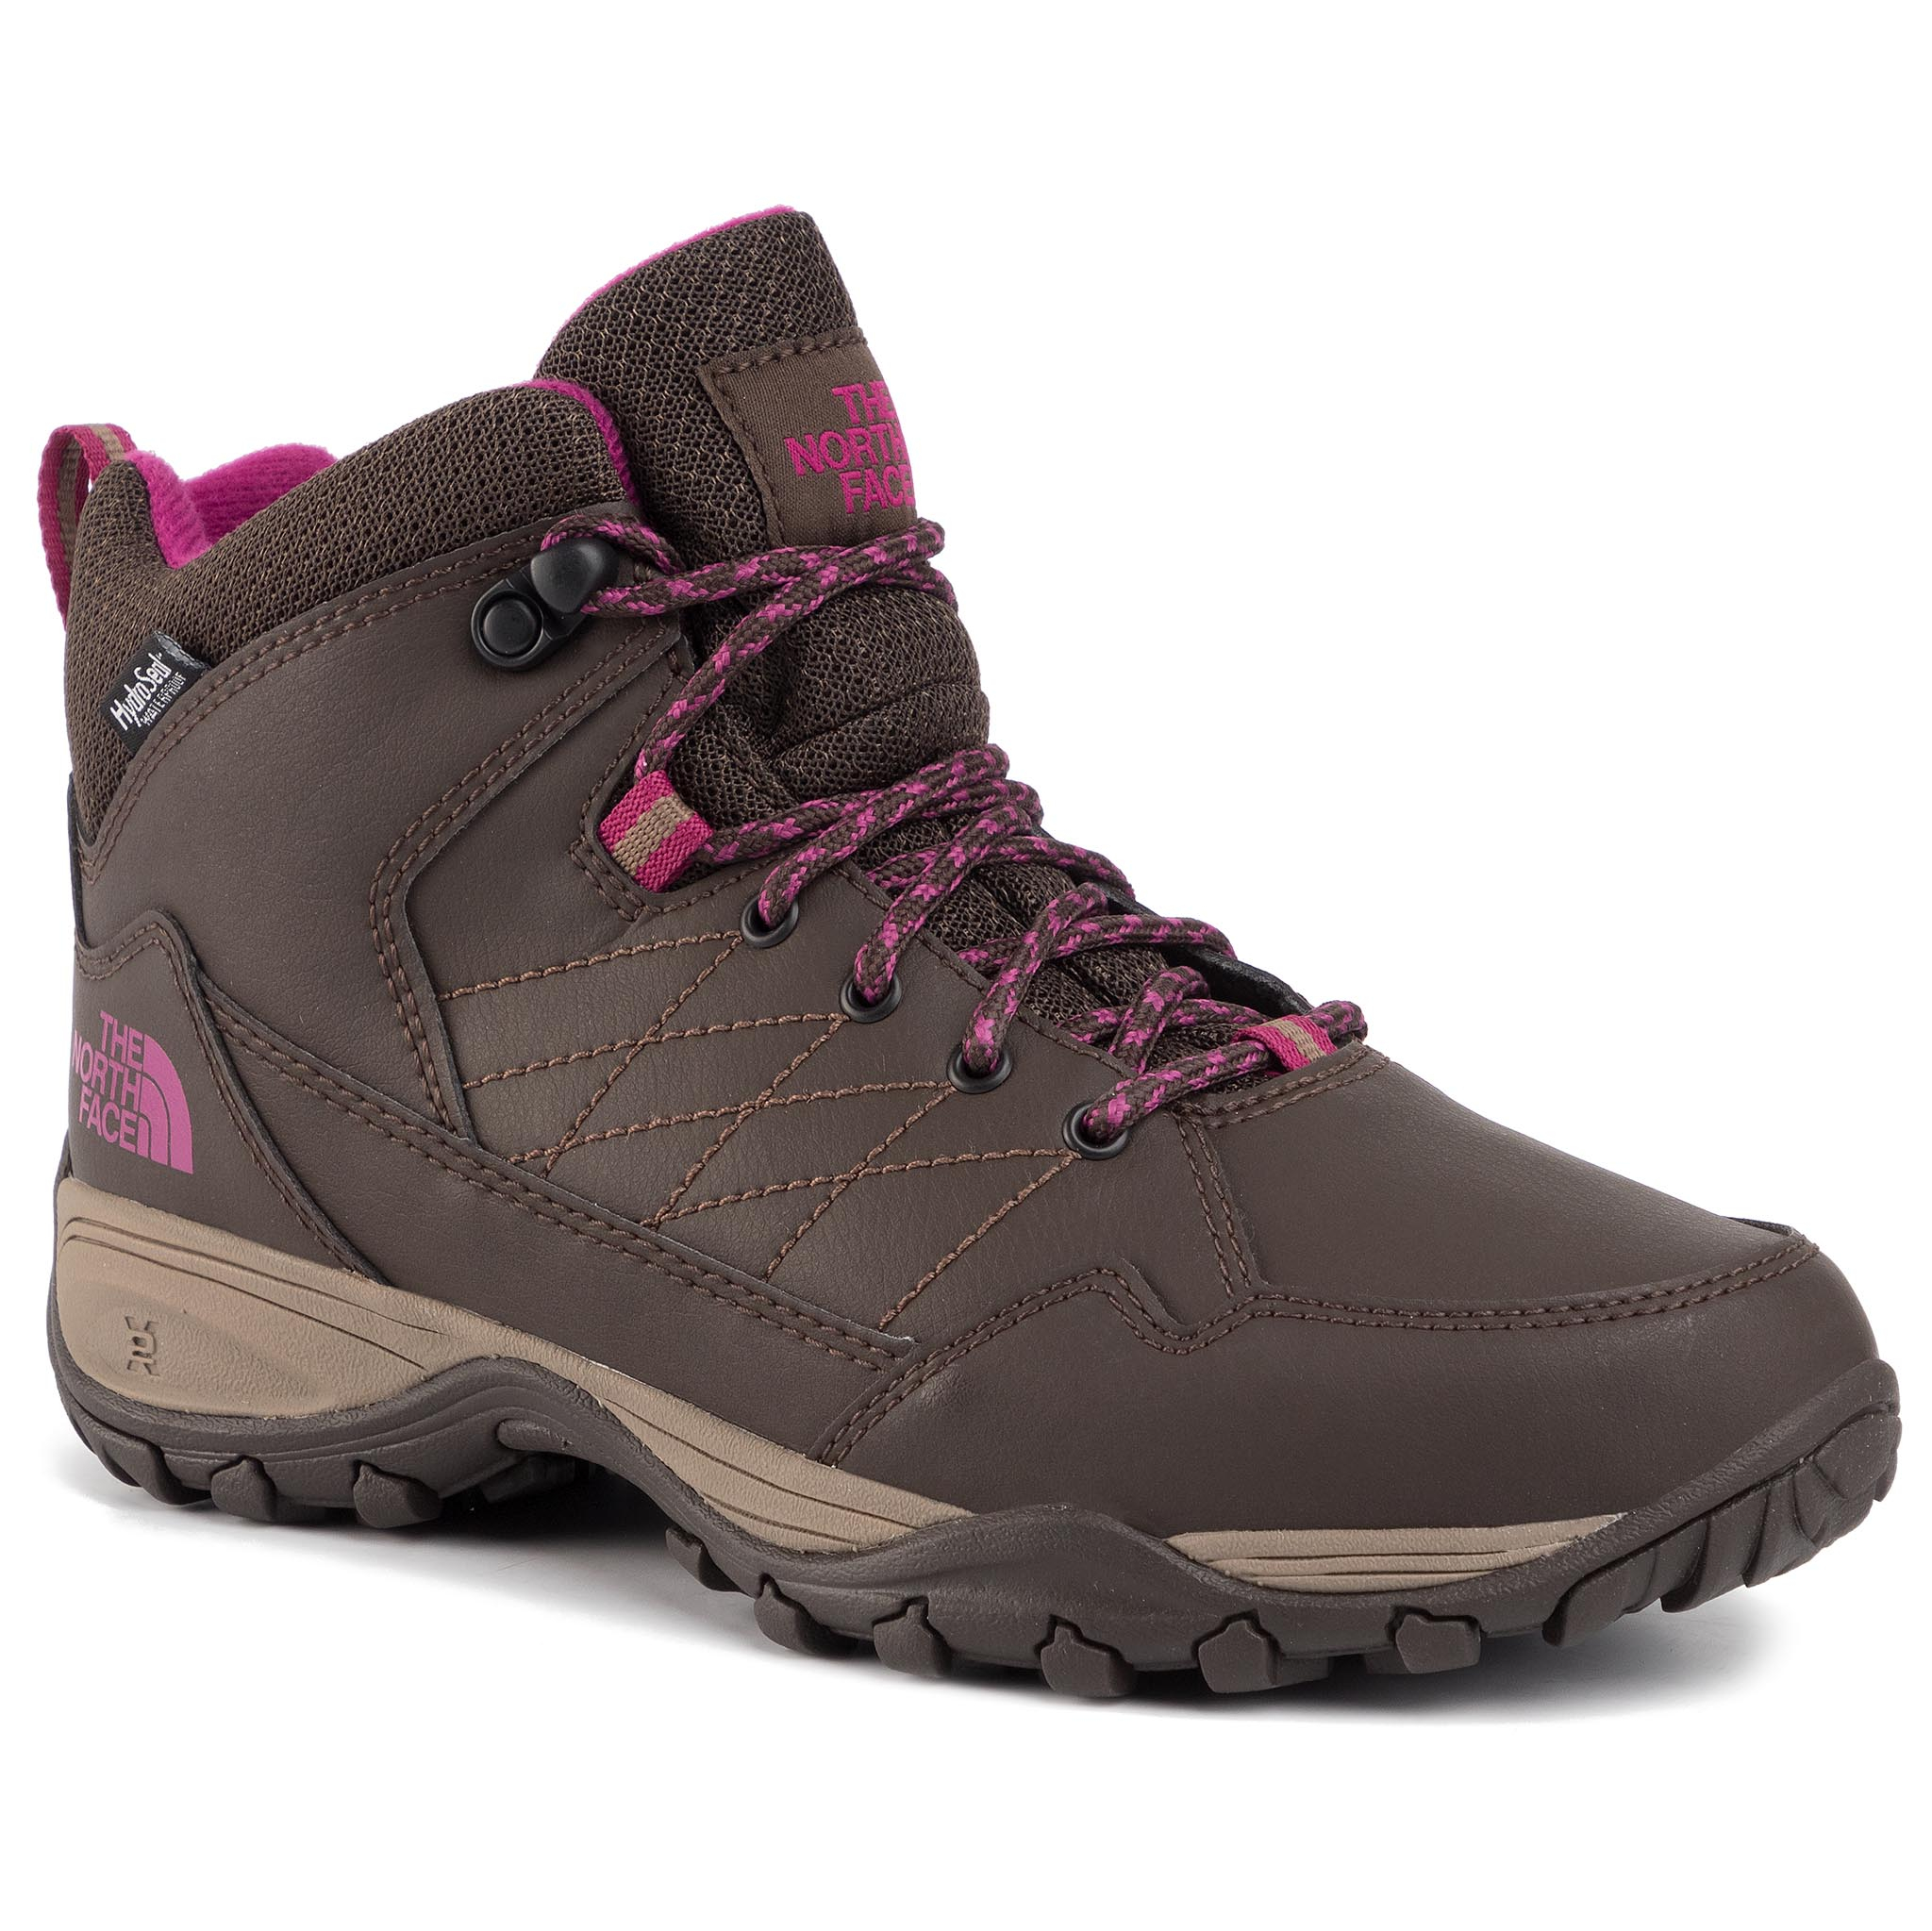 Trekkings THE NORTH FACE - Storm Strike II Wp T93RRRGTJ Coffe Brown/Fossil